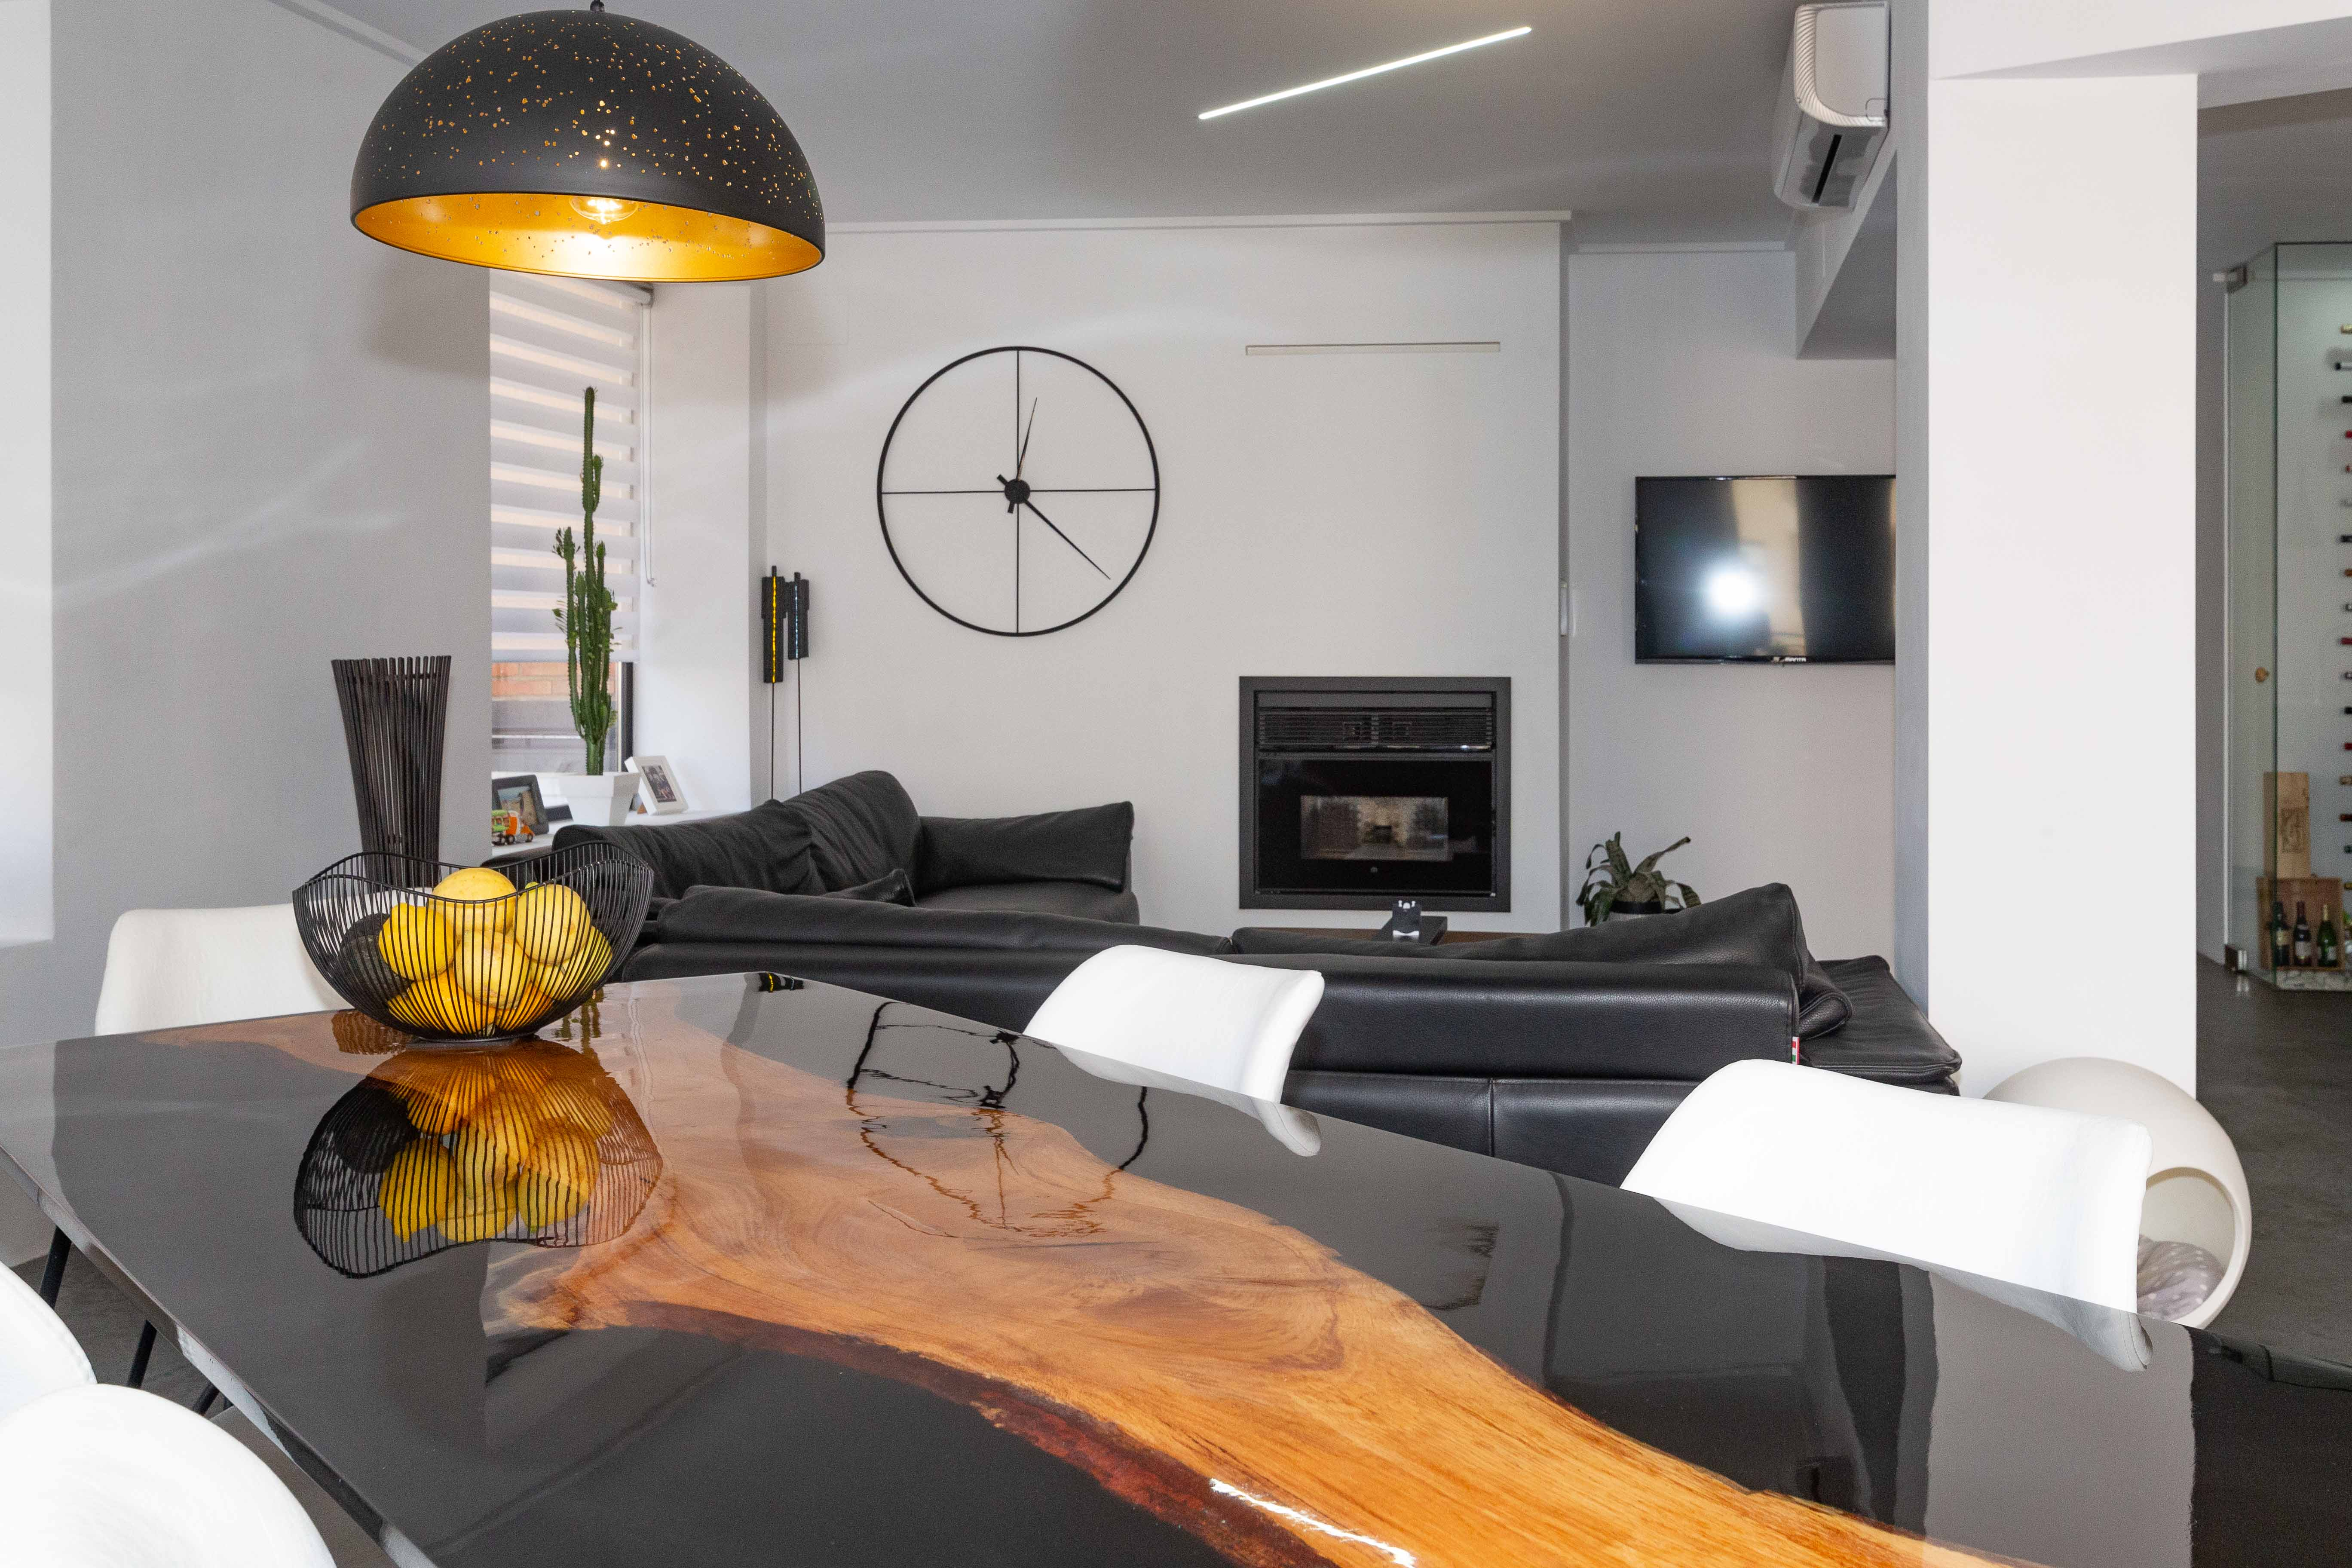 Photogallery - 16 - Vives Pons Homes